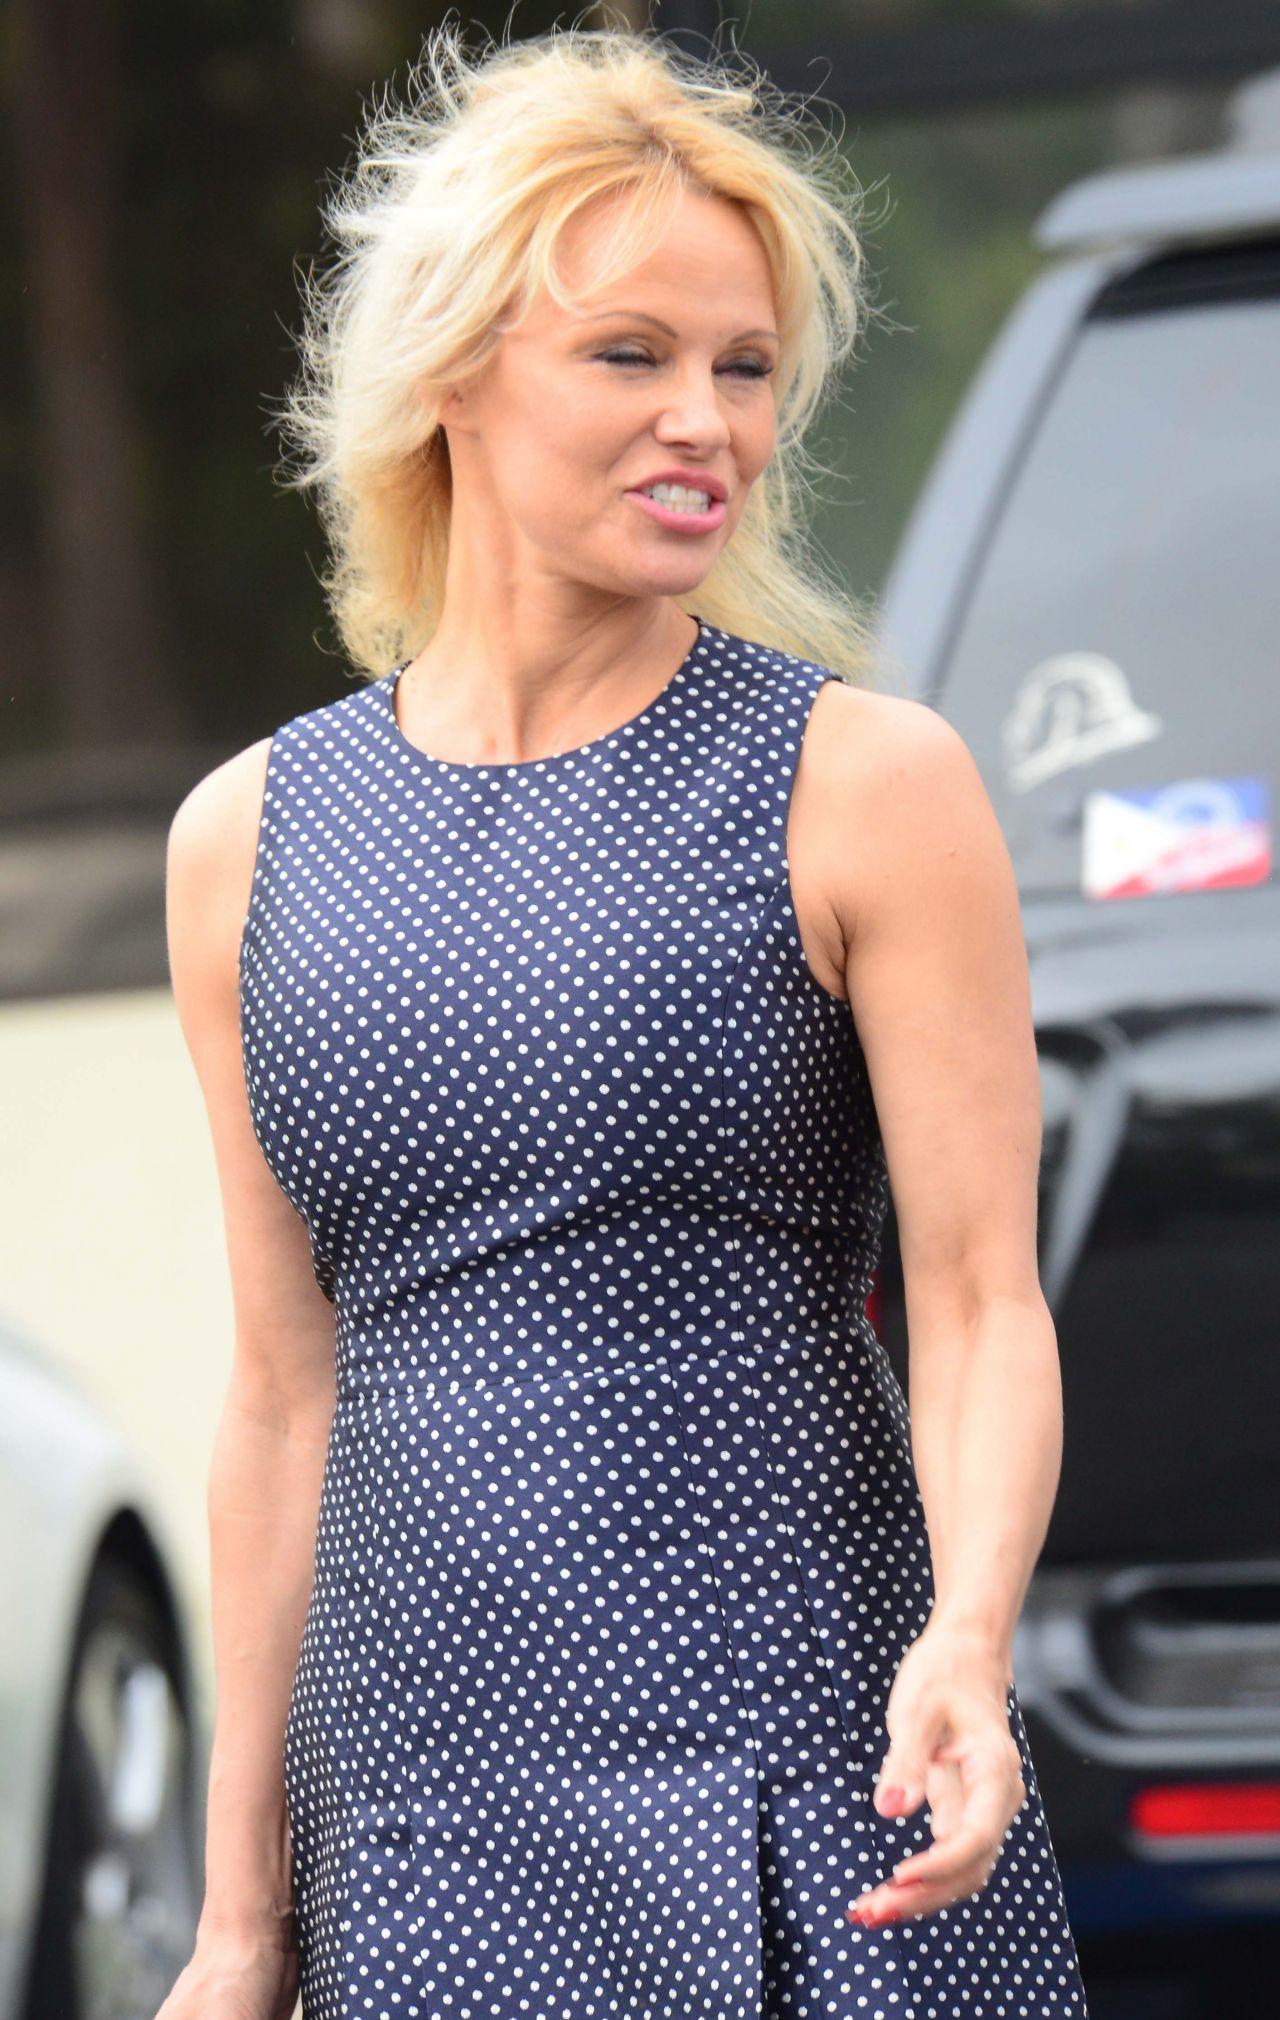 Pamela Anderson at a Hair Salon in Beverly Hills 6/1/2016 Pamela Anderson